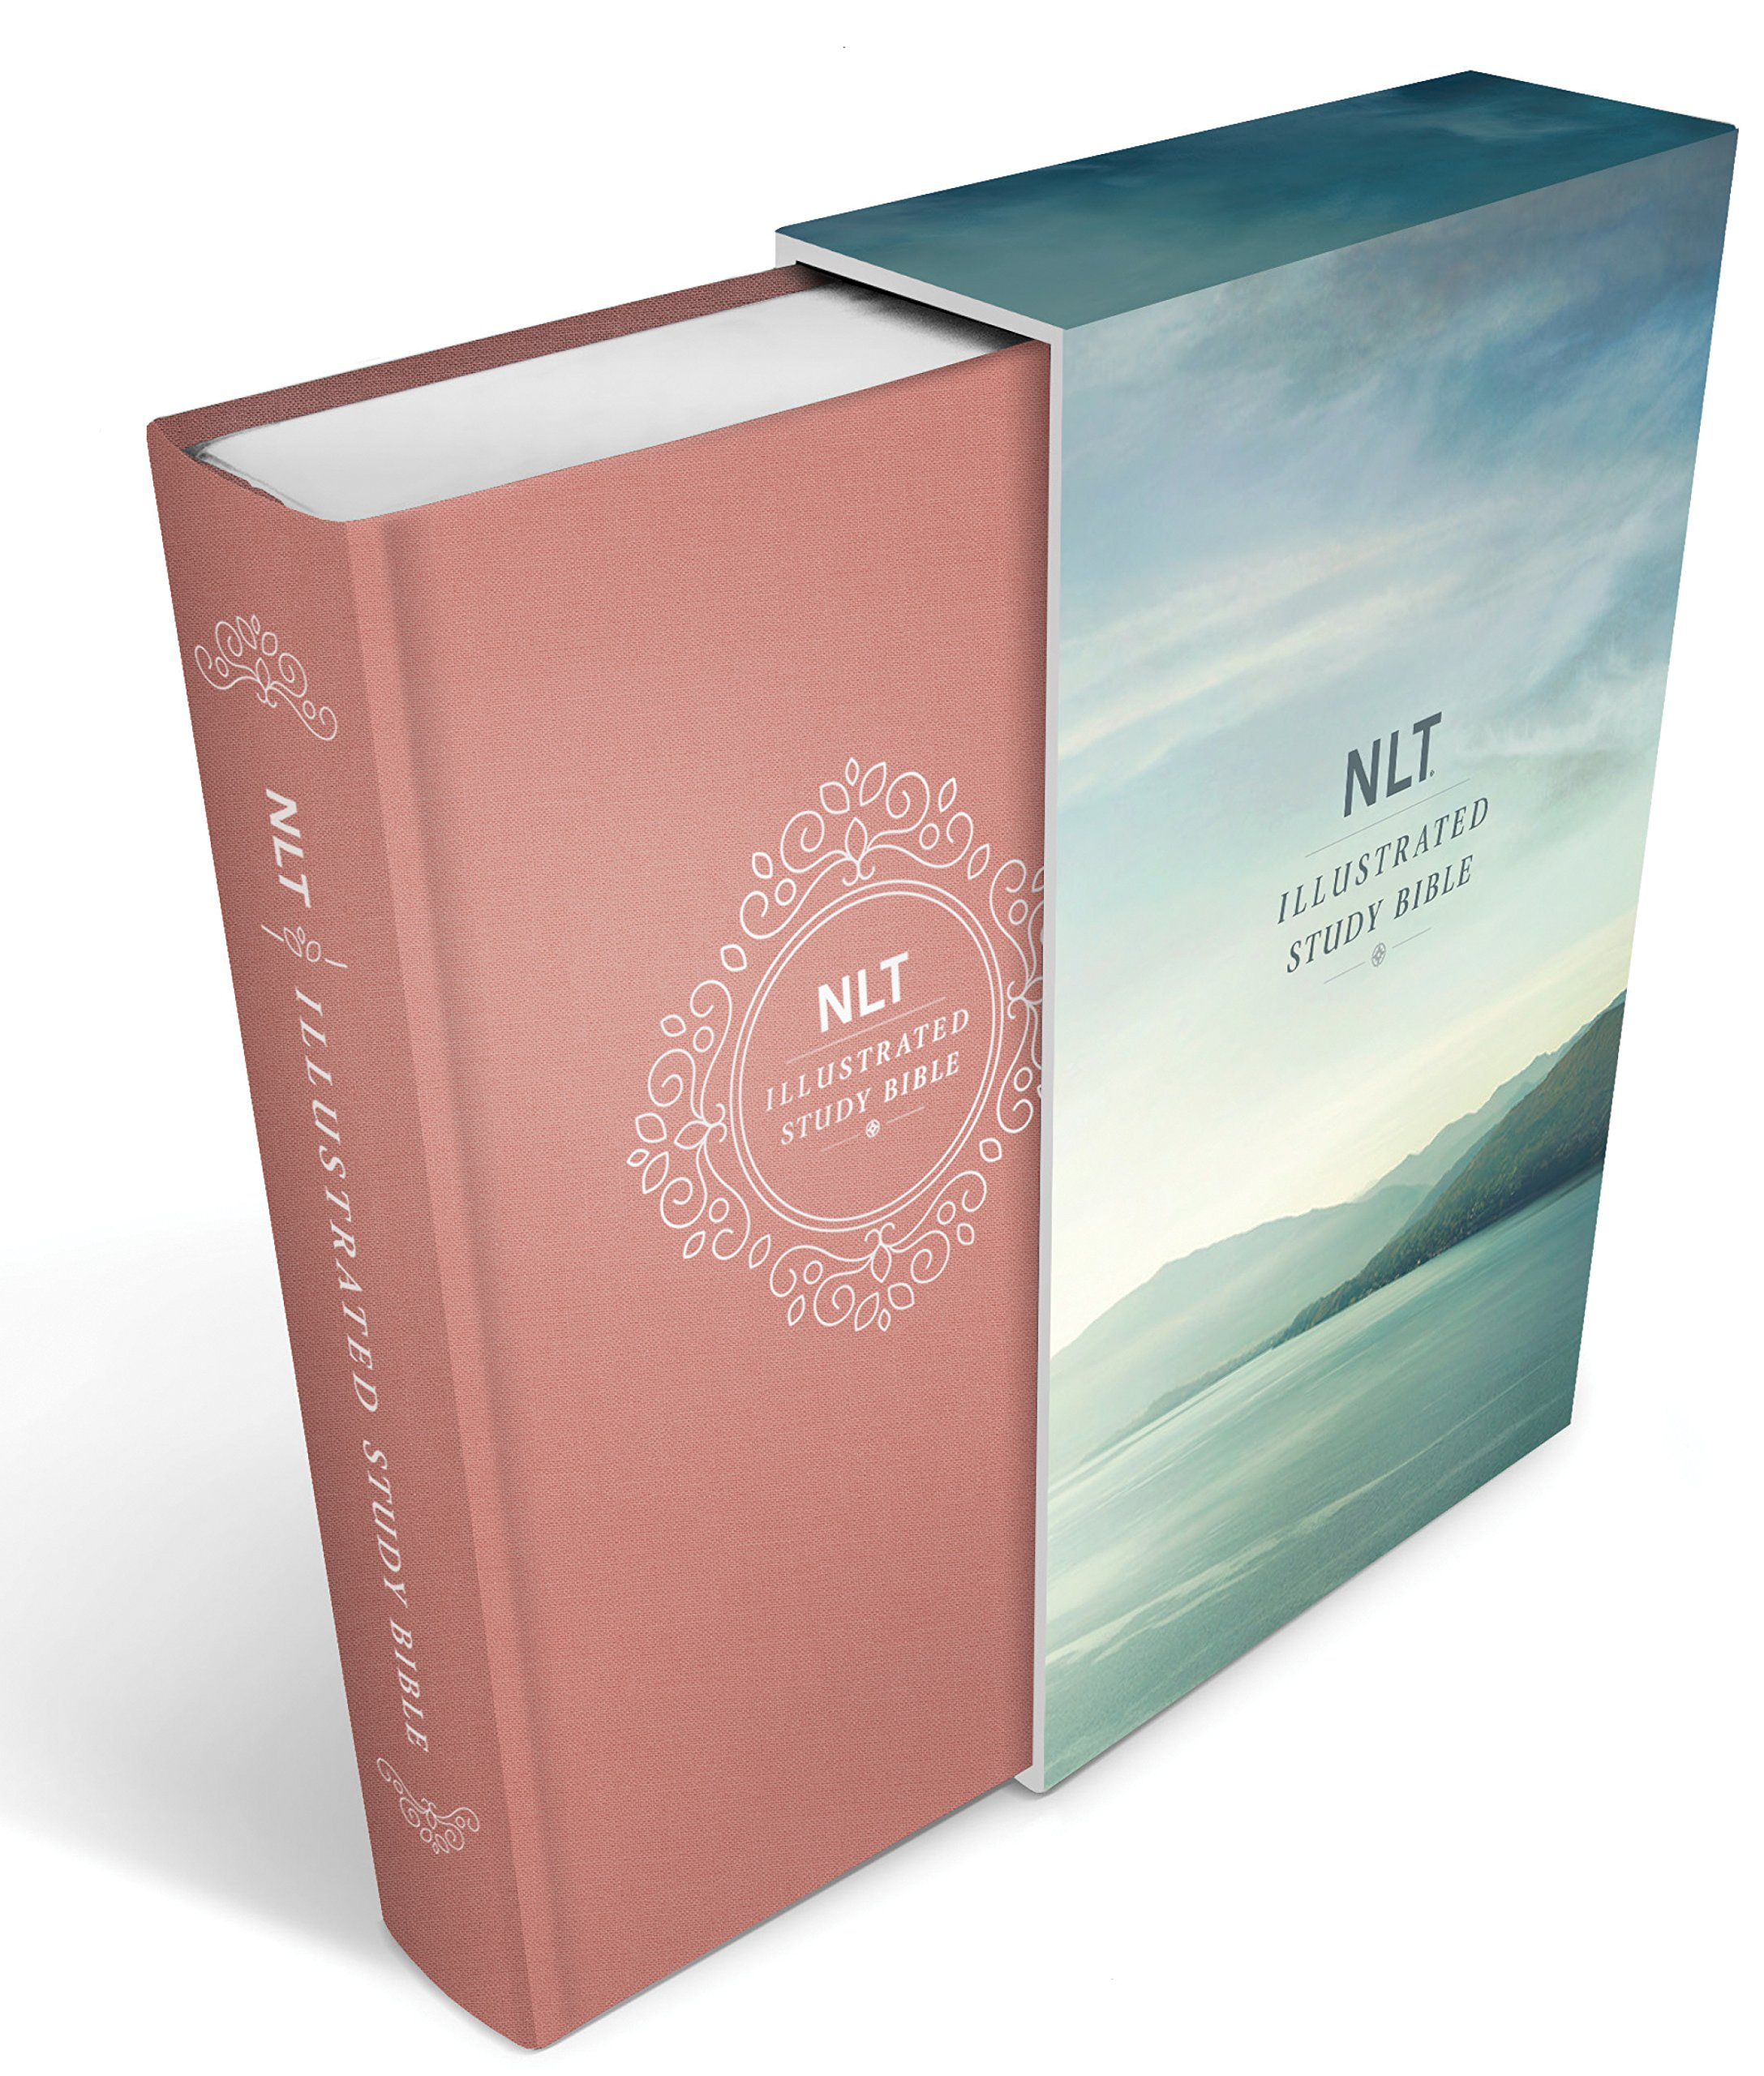 Illustrated Study Bible NLT Deluxe, Deluxe Linen Edition